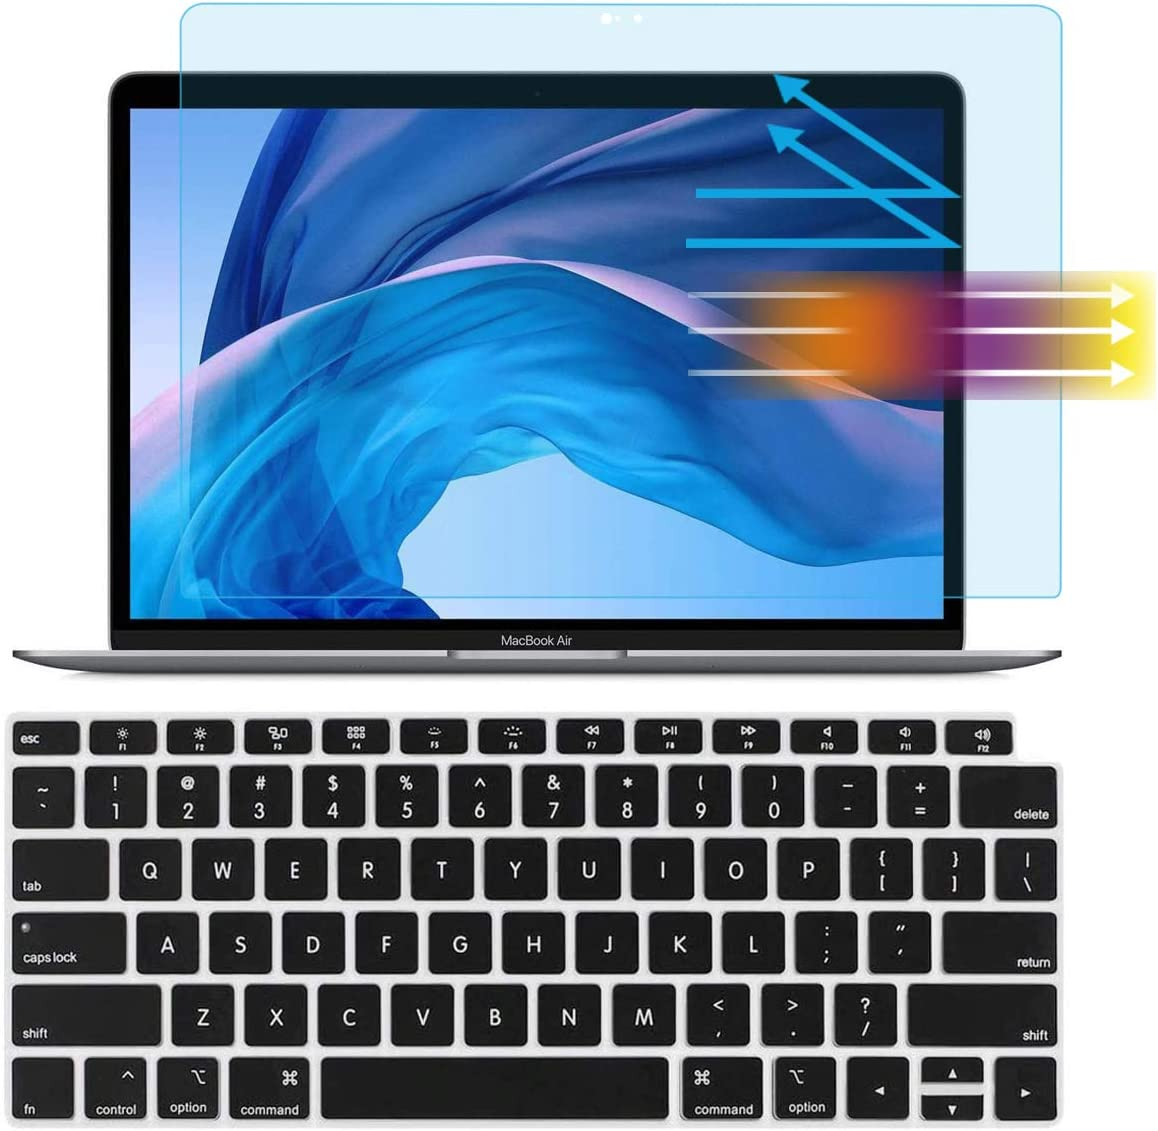 AntiBlue Light Glare Screen Protector Keyboard Cover for MacBook Air 13-inch Model A2237(M1) A2179 A1932 2020 2019 2018, Eyes Protection Filter Reduces Eye Strain